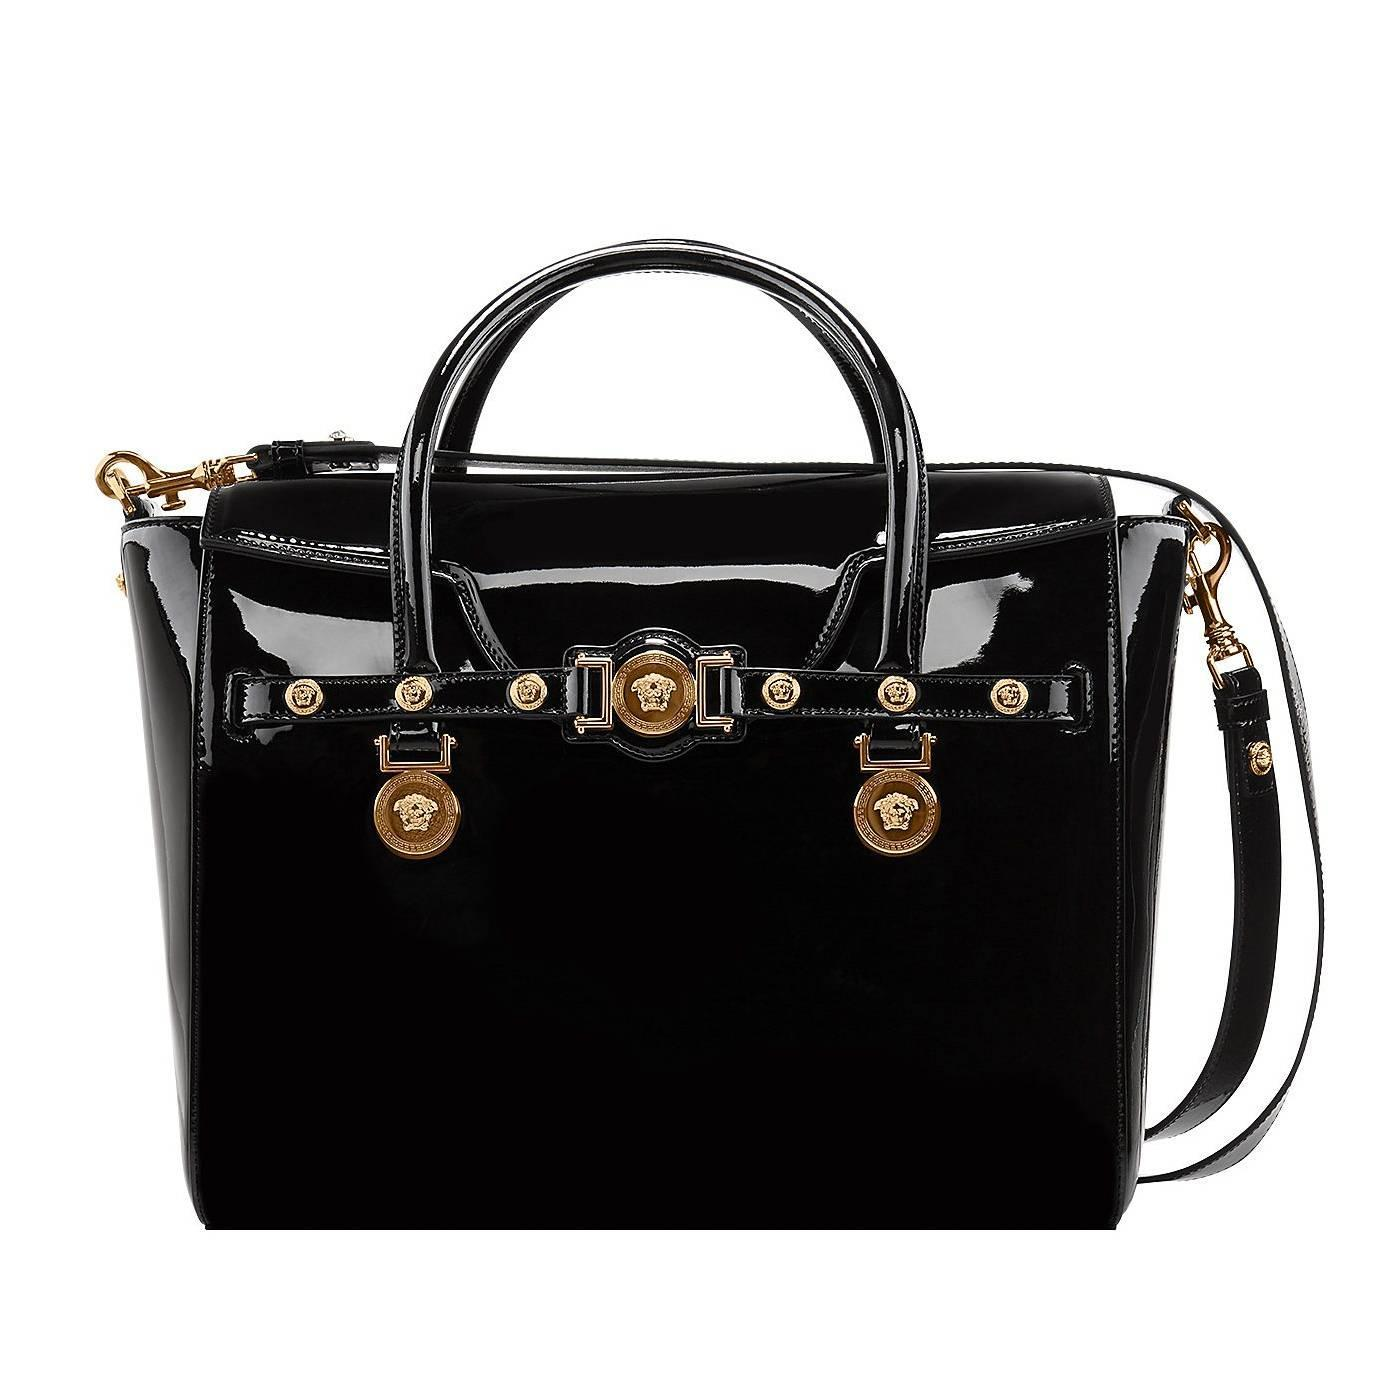 VERSACE Large Signature Bag in Black Patent Leather at 1stdibs d6154253aa86e